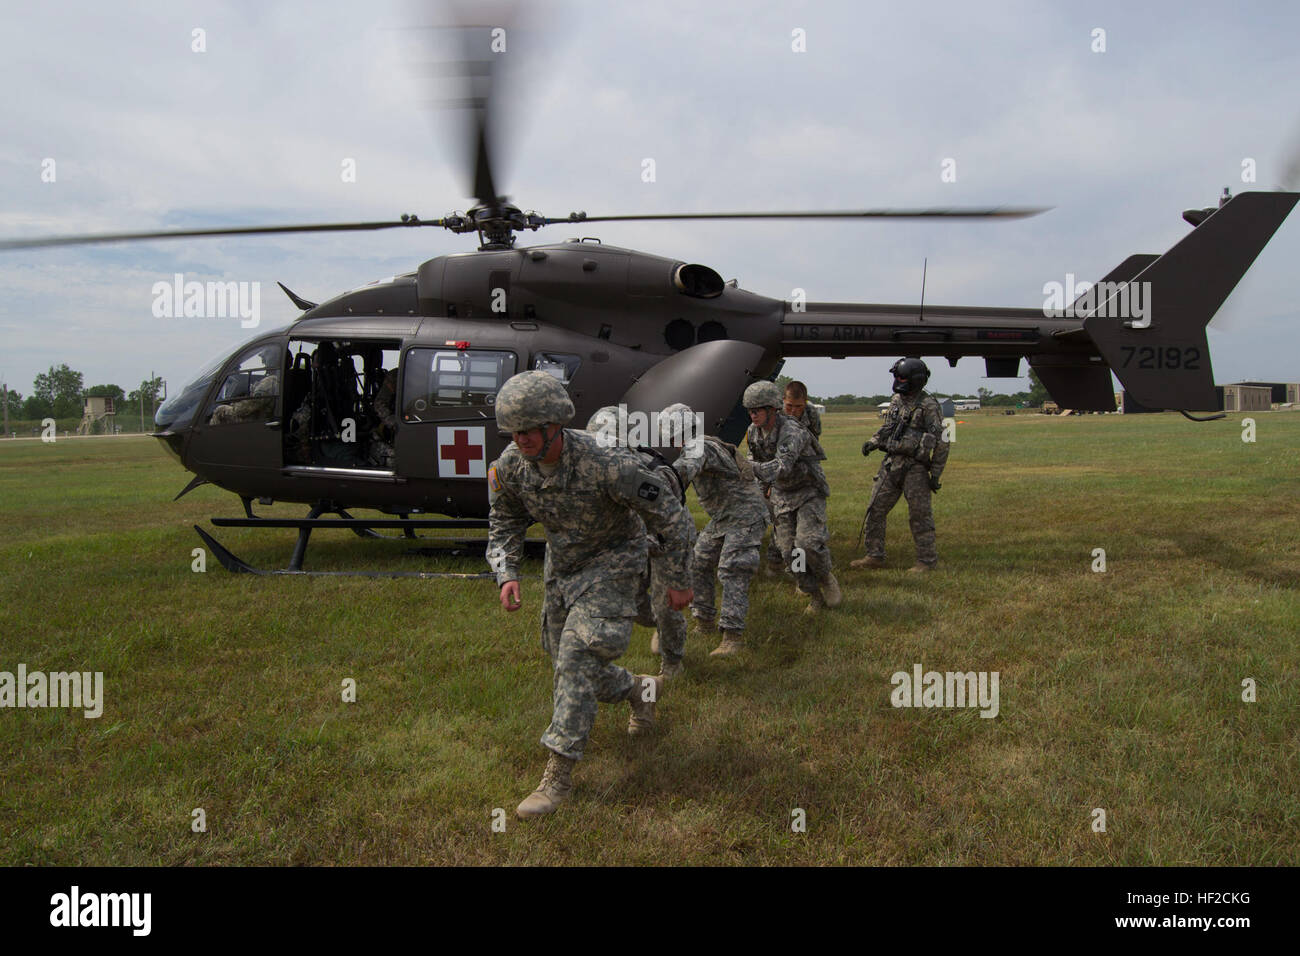 Members of 1077th Ground Ambulance Company, Kansas Army National Guard, Olathe, Kan., clear the area after loading - Stock Image